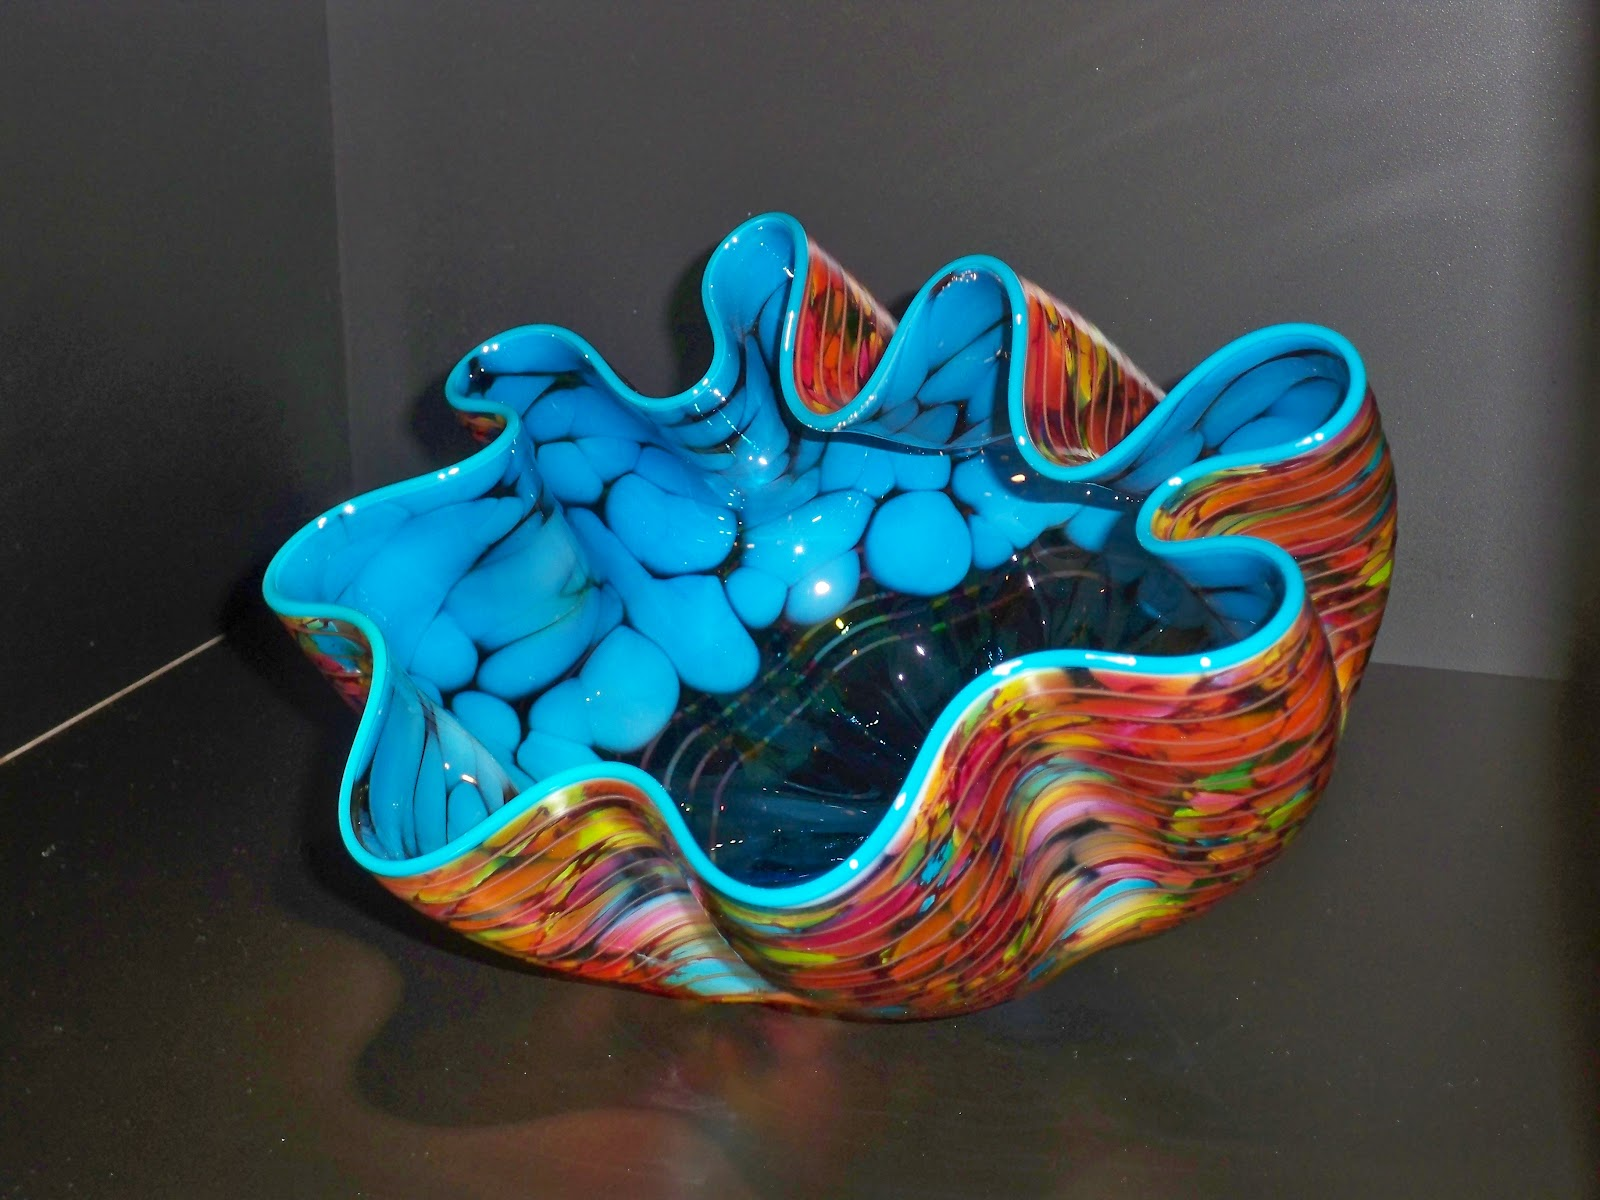 chihuly art glass bowl